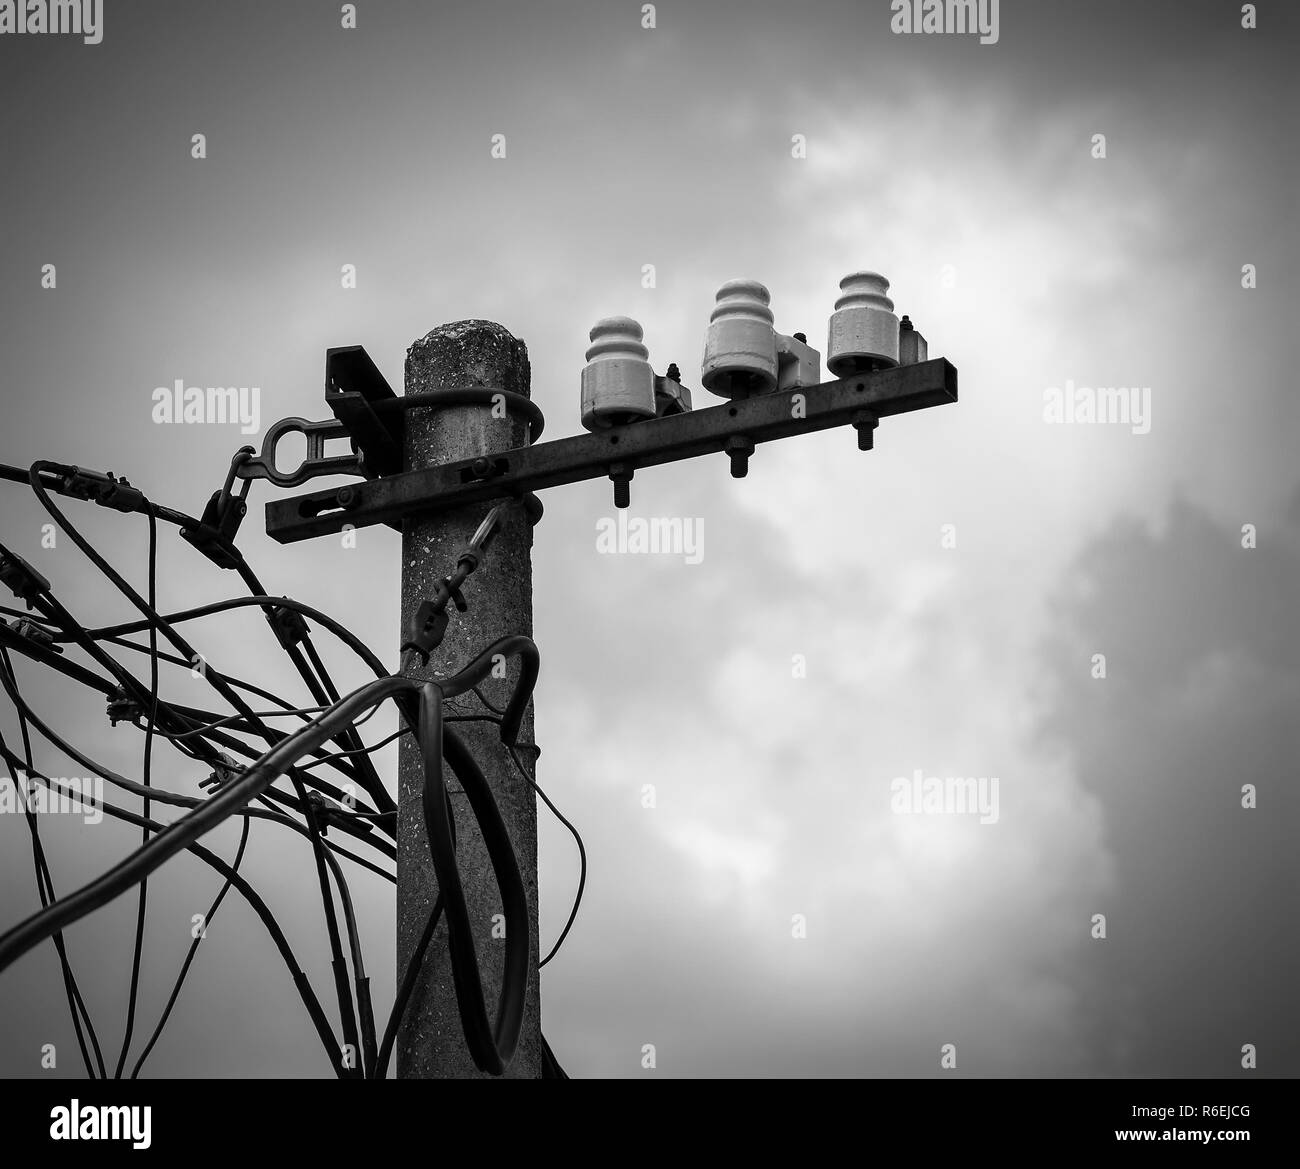 Light Pole Installation Near Me: Electricity Poles Black And White Stock Photos & Images